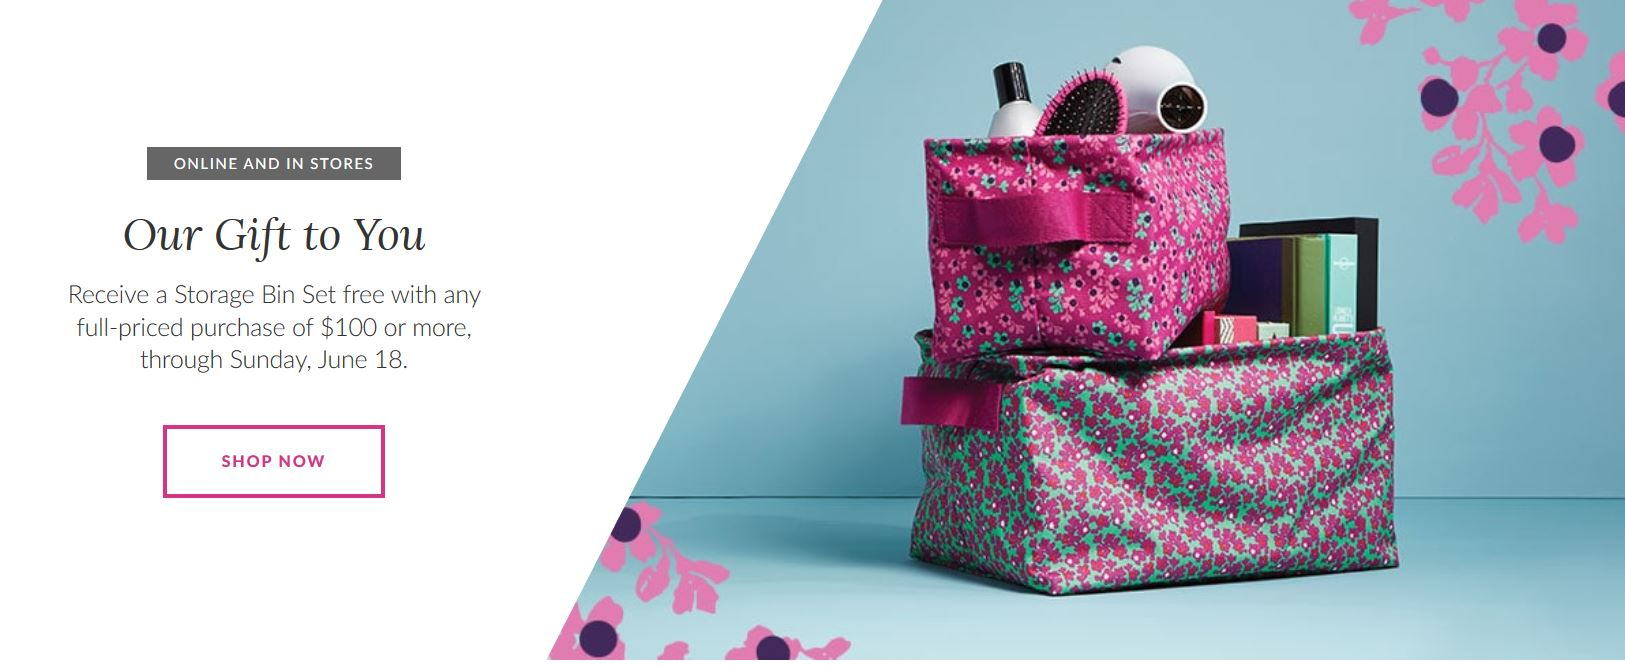 Superieur Head Over To Vera Bradley And You Can Receive A Free Storage Bin Set With  Your $100 Purchase! (Valid 6/15 6/18)